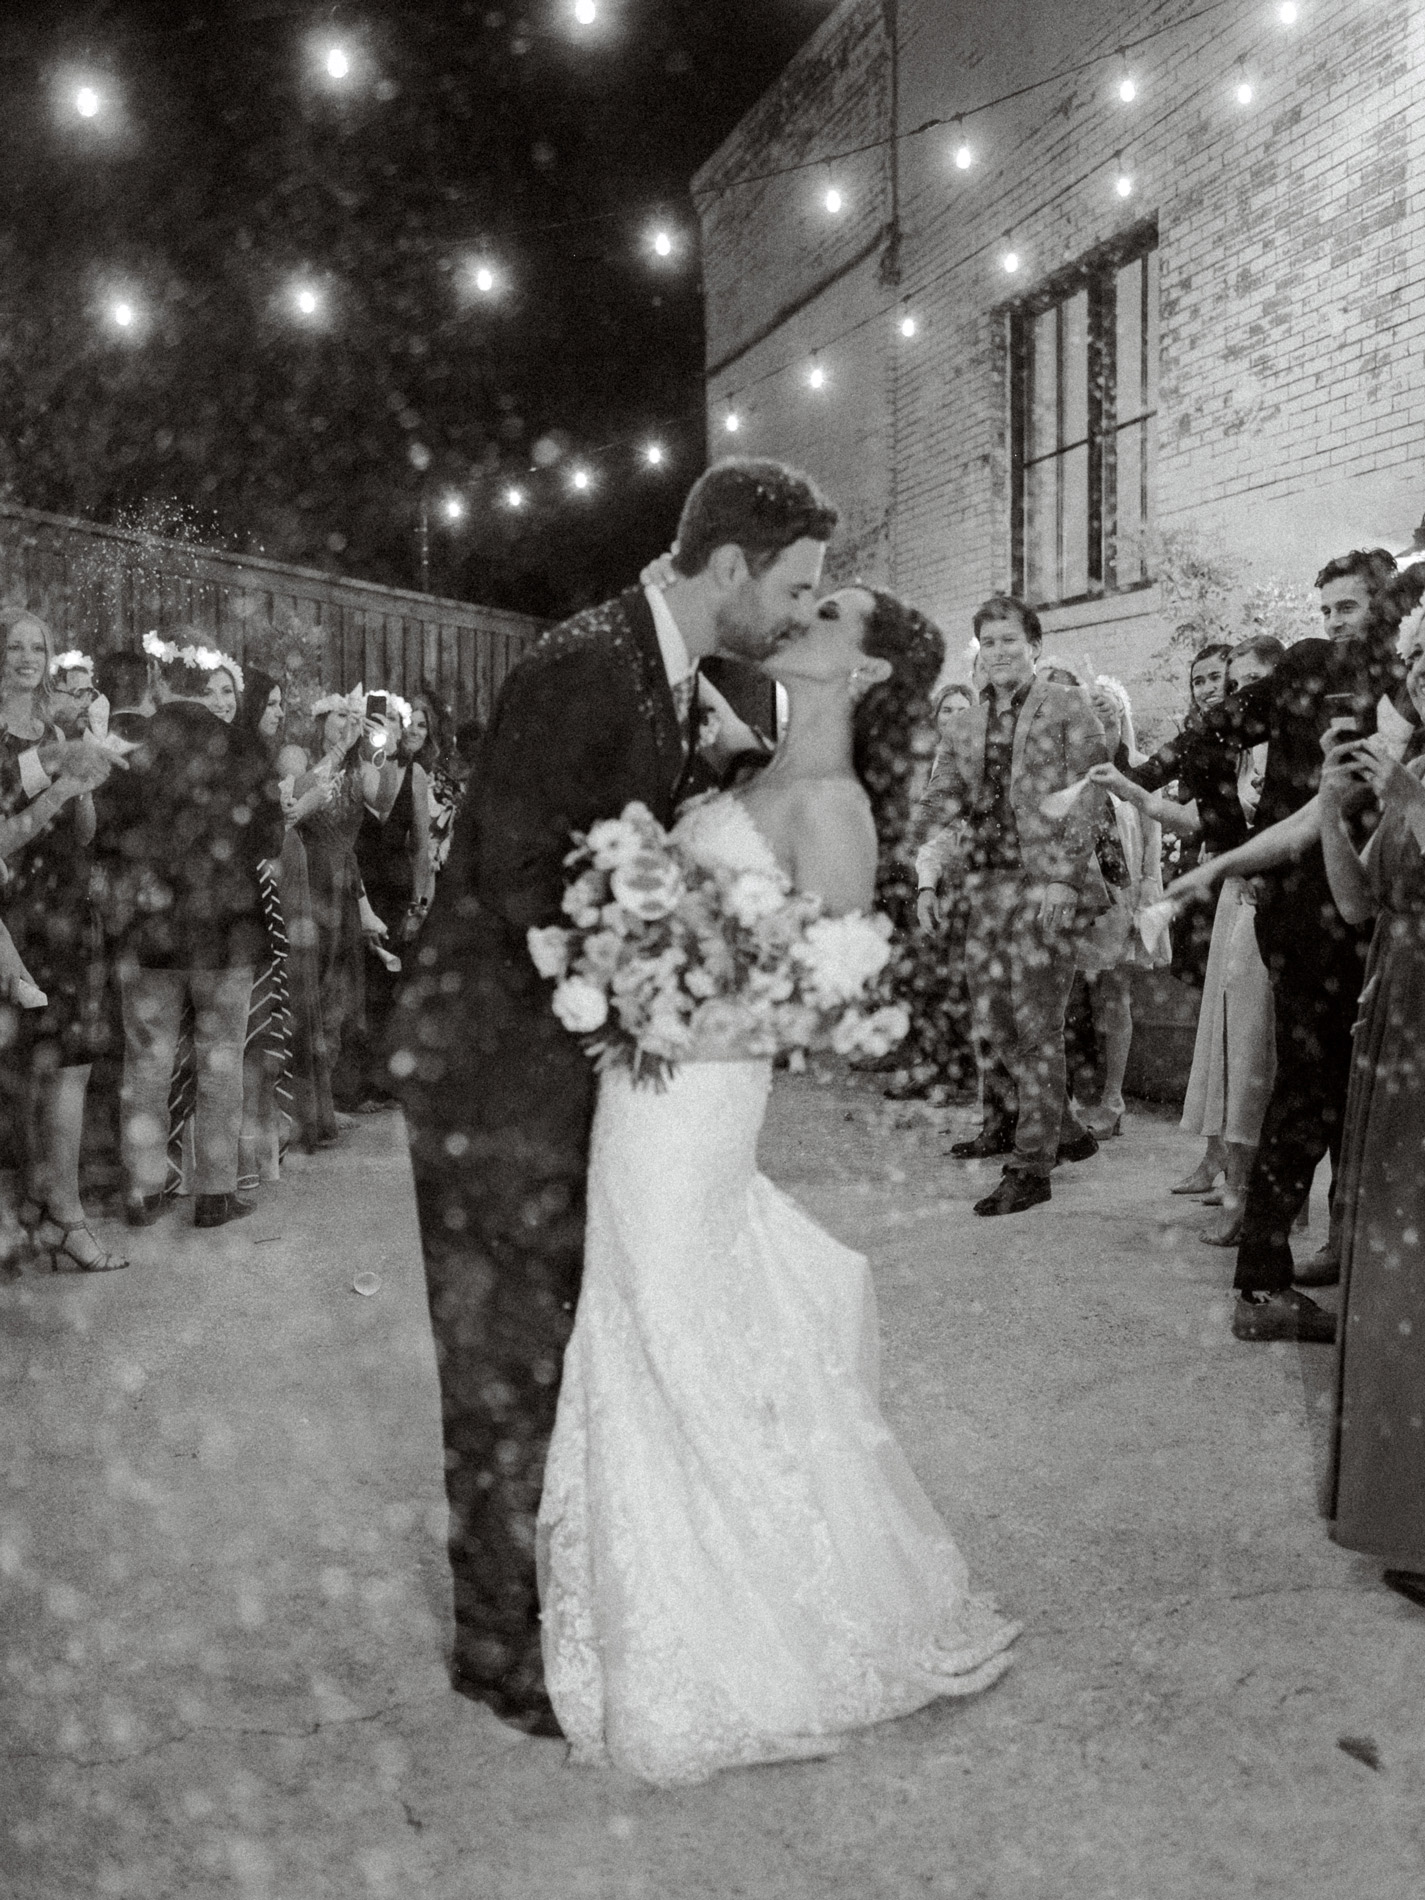 black and white night portrait of bride and groom kissing